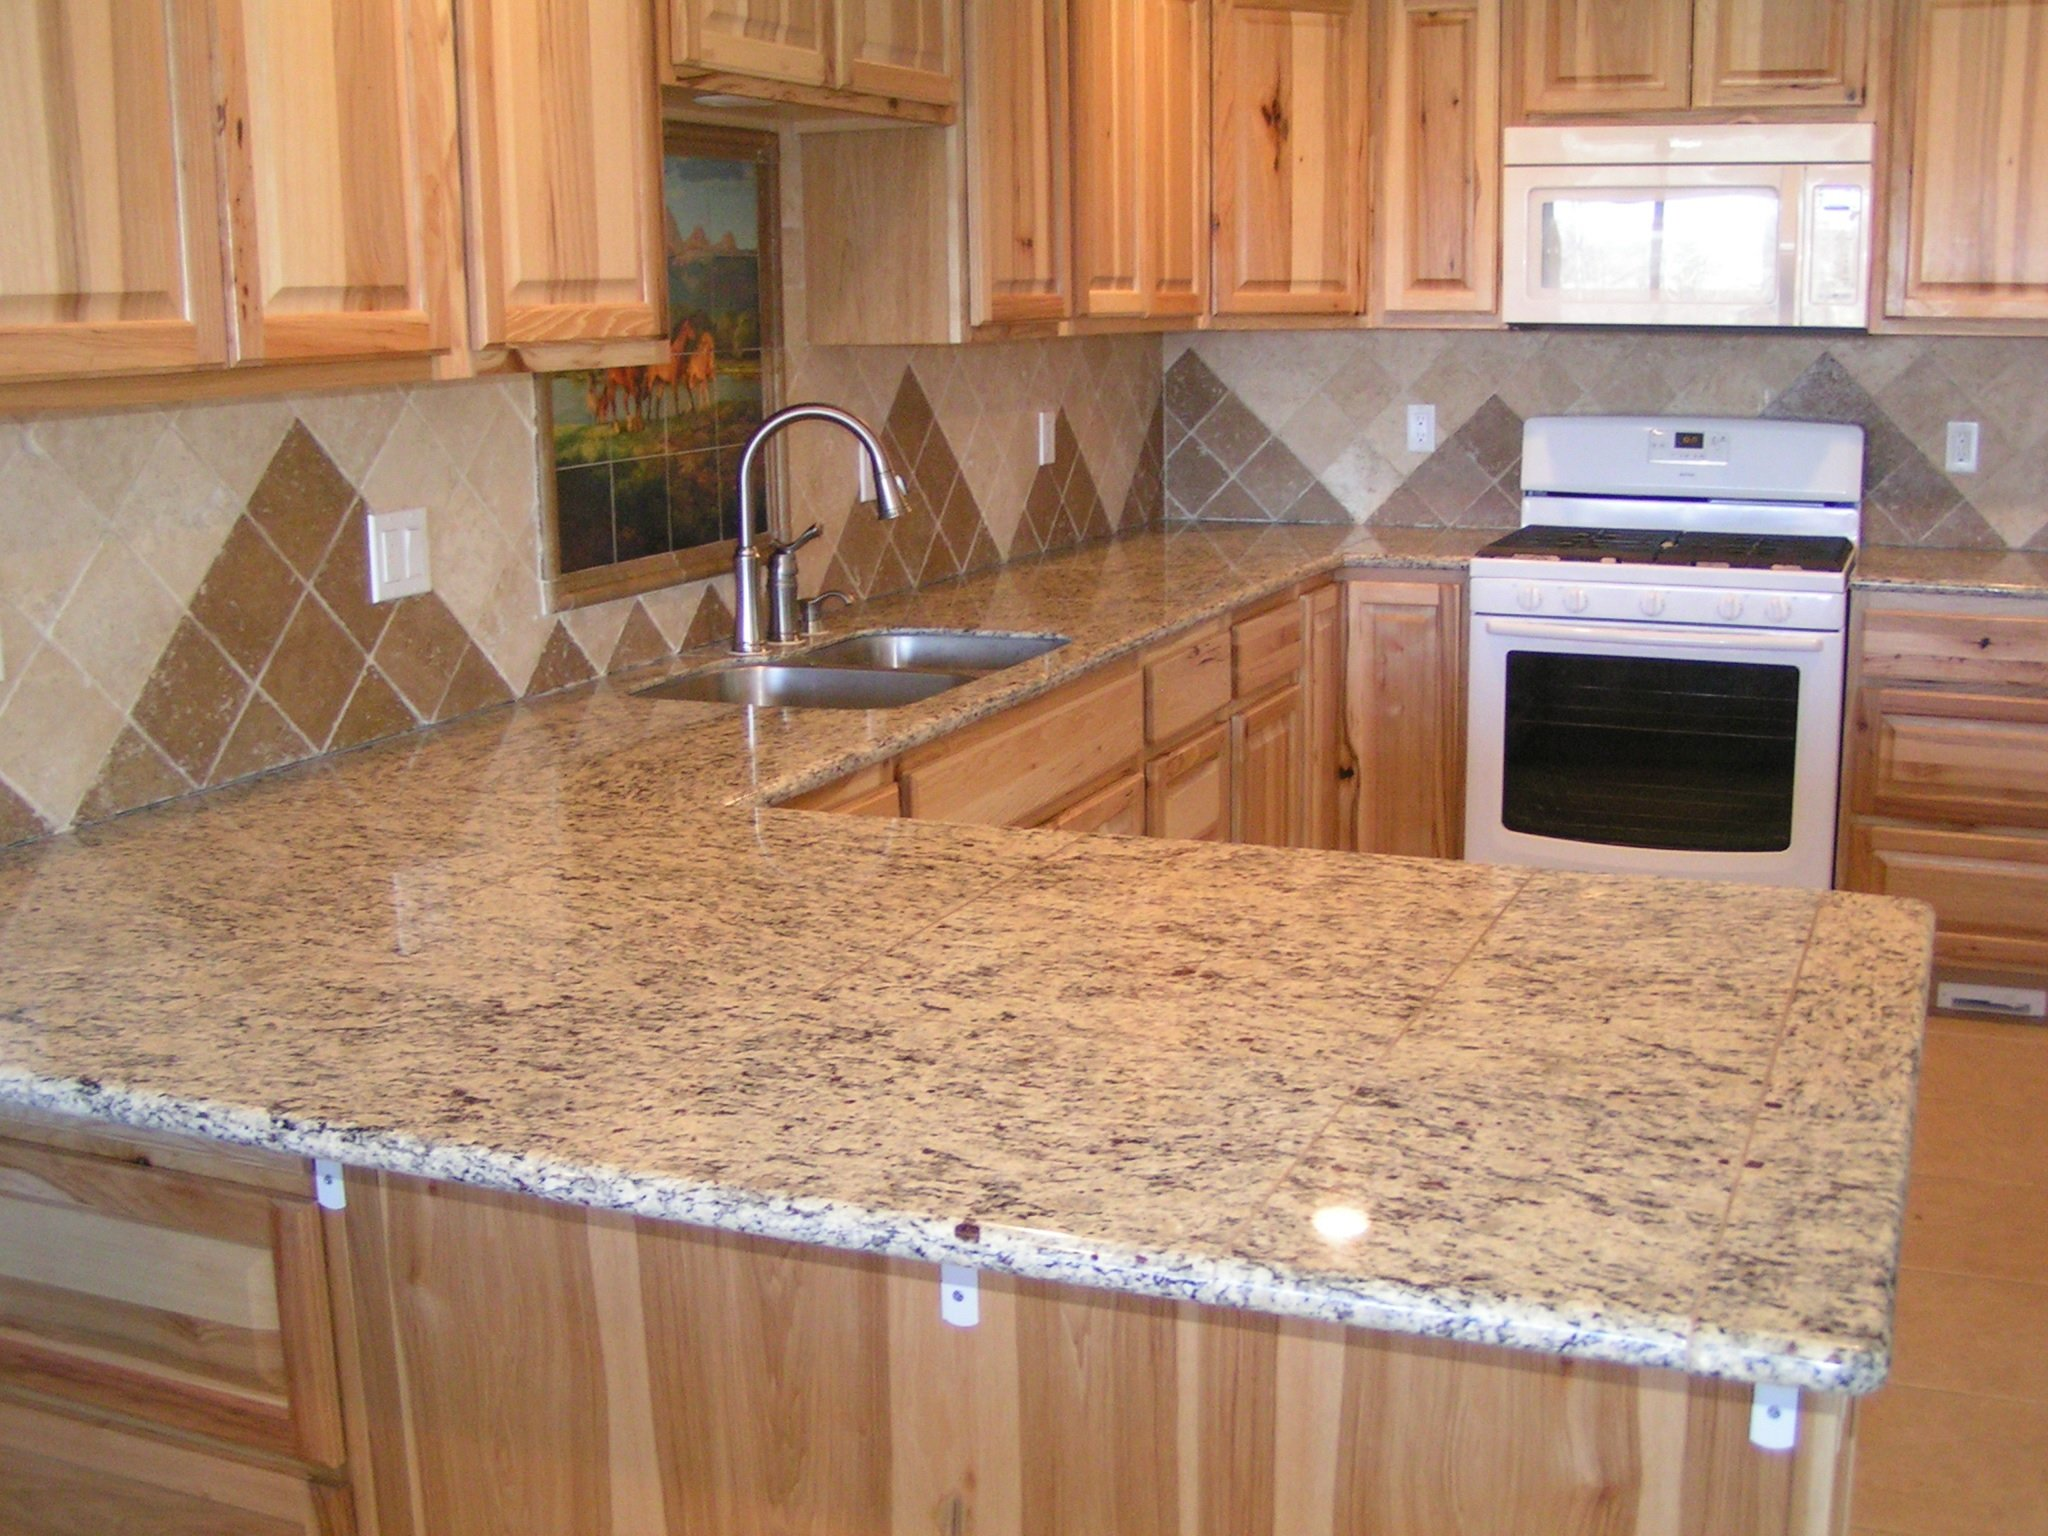 pros luxury day recycled crushed kitchen glass cost and countertop countertops photo epoxy latter cons quartz